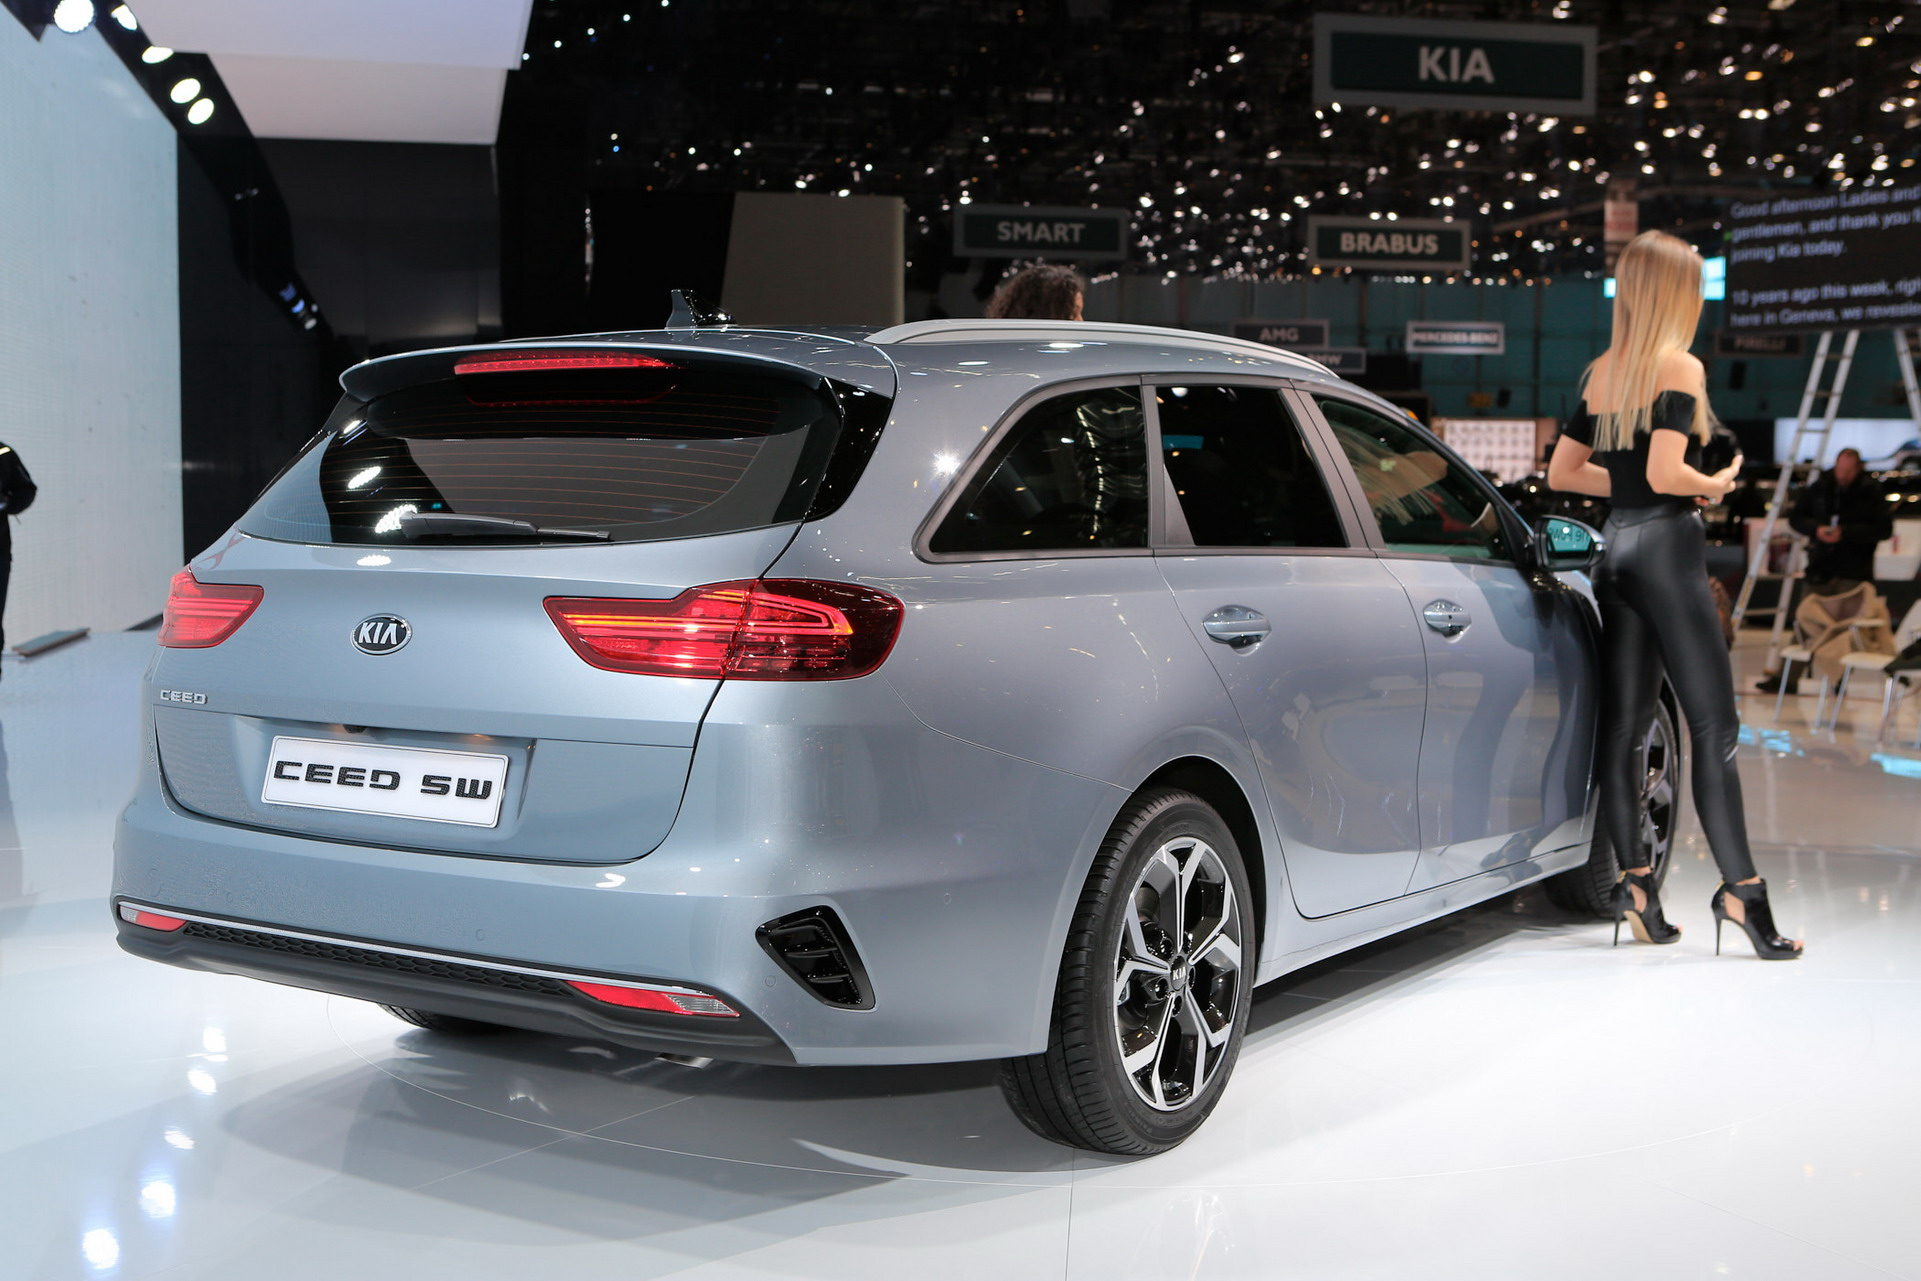 2019 kia ceed sportswagon revealed in geneva with some very bmw ish taillights. Black Bedroom Furniture Sets. Home Design Ideas